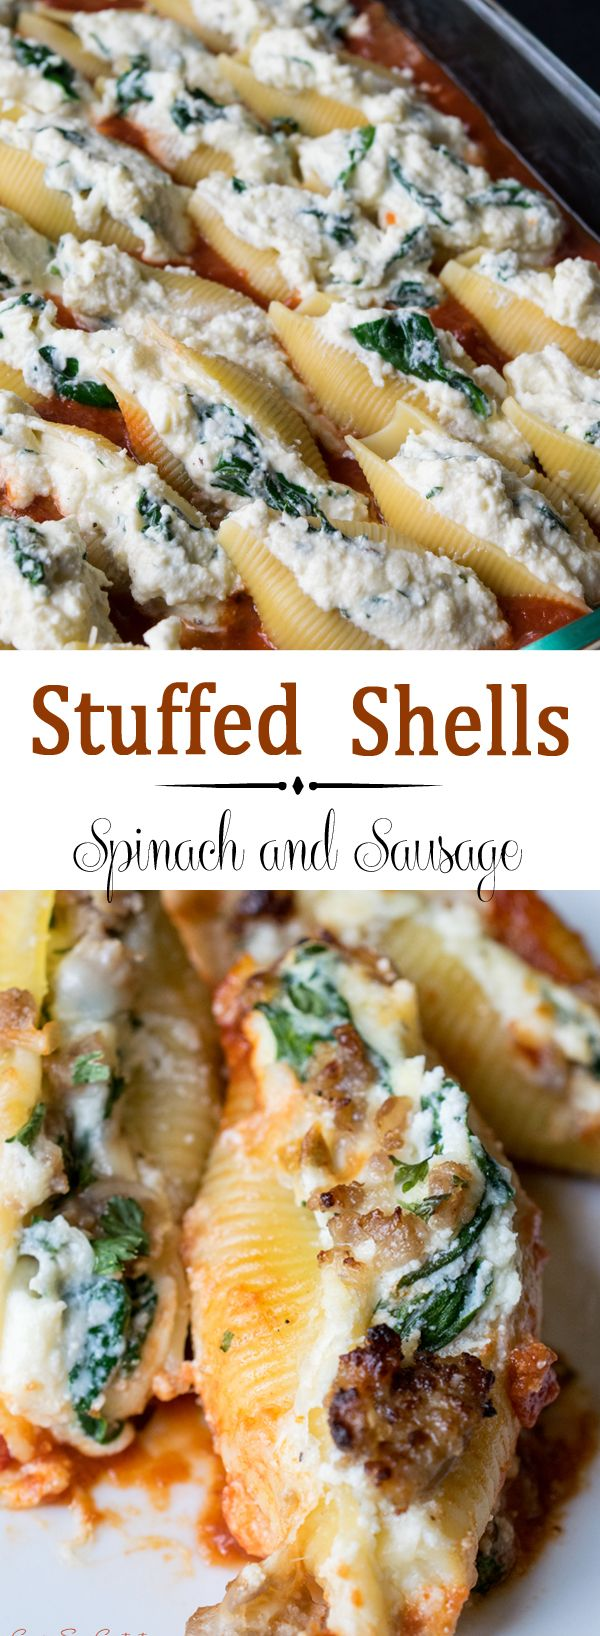 Easy Cheesy Stuffed Shells are a delicious main deal for the whole family. This recipe combines ricotta, mozzarella, and paresean cheeses, and spinach stuffed into the shells. A spicy layer of Hot or Mild Italian sausage completes the meal. A family favorite Italian dinner!